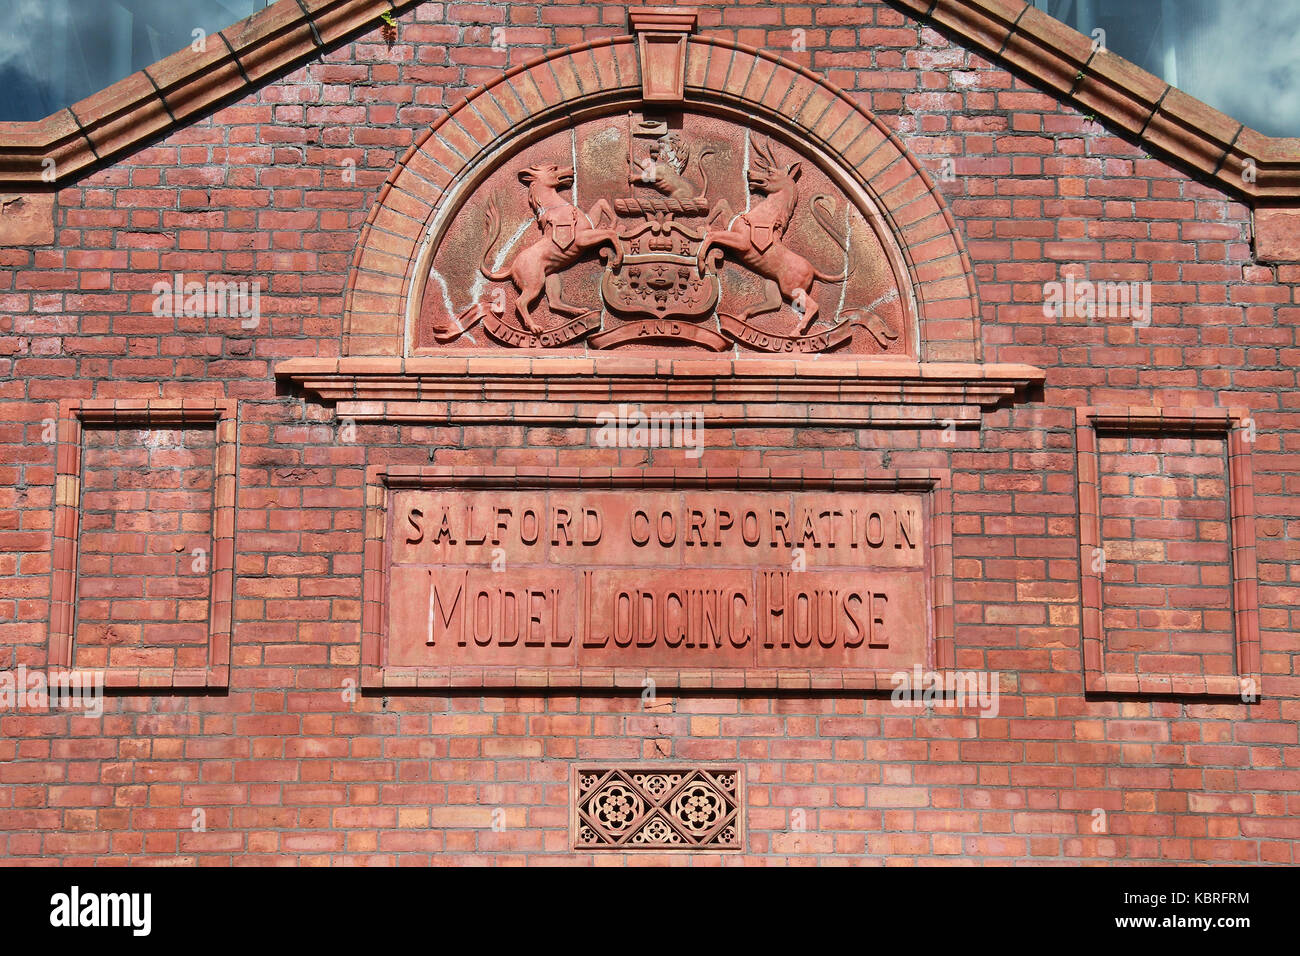 Salford Corporation Model Lodging House building - Stock Image